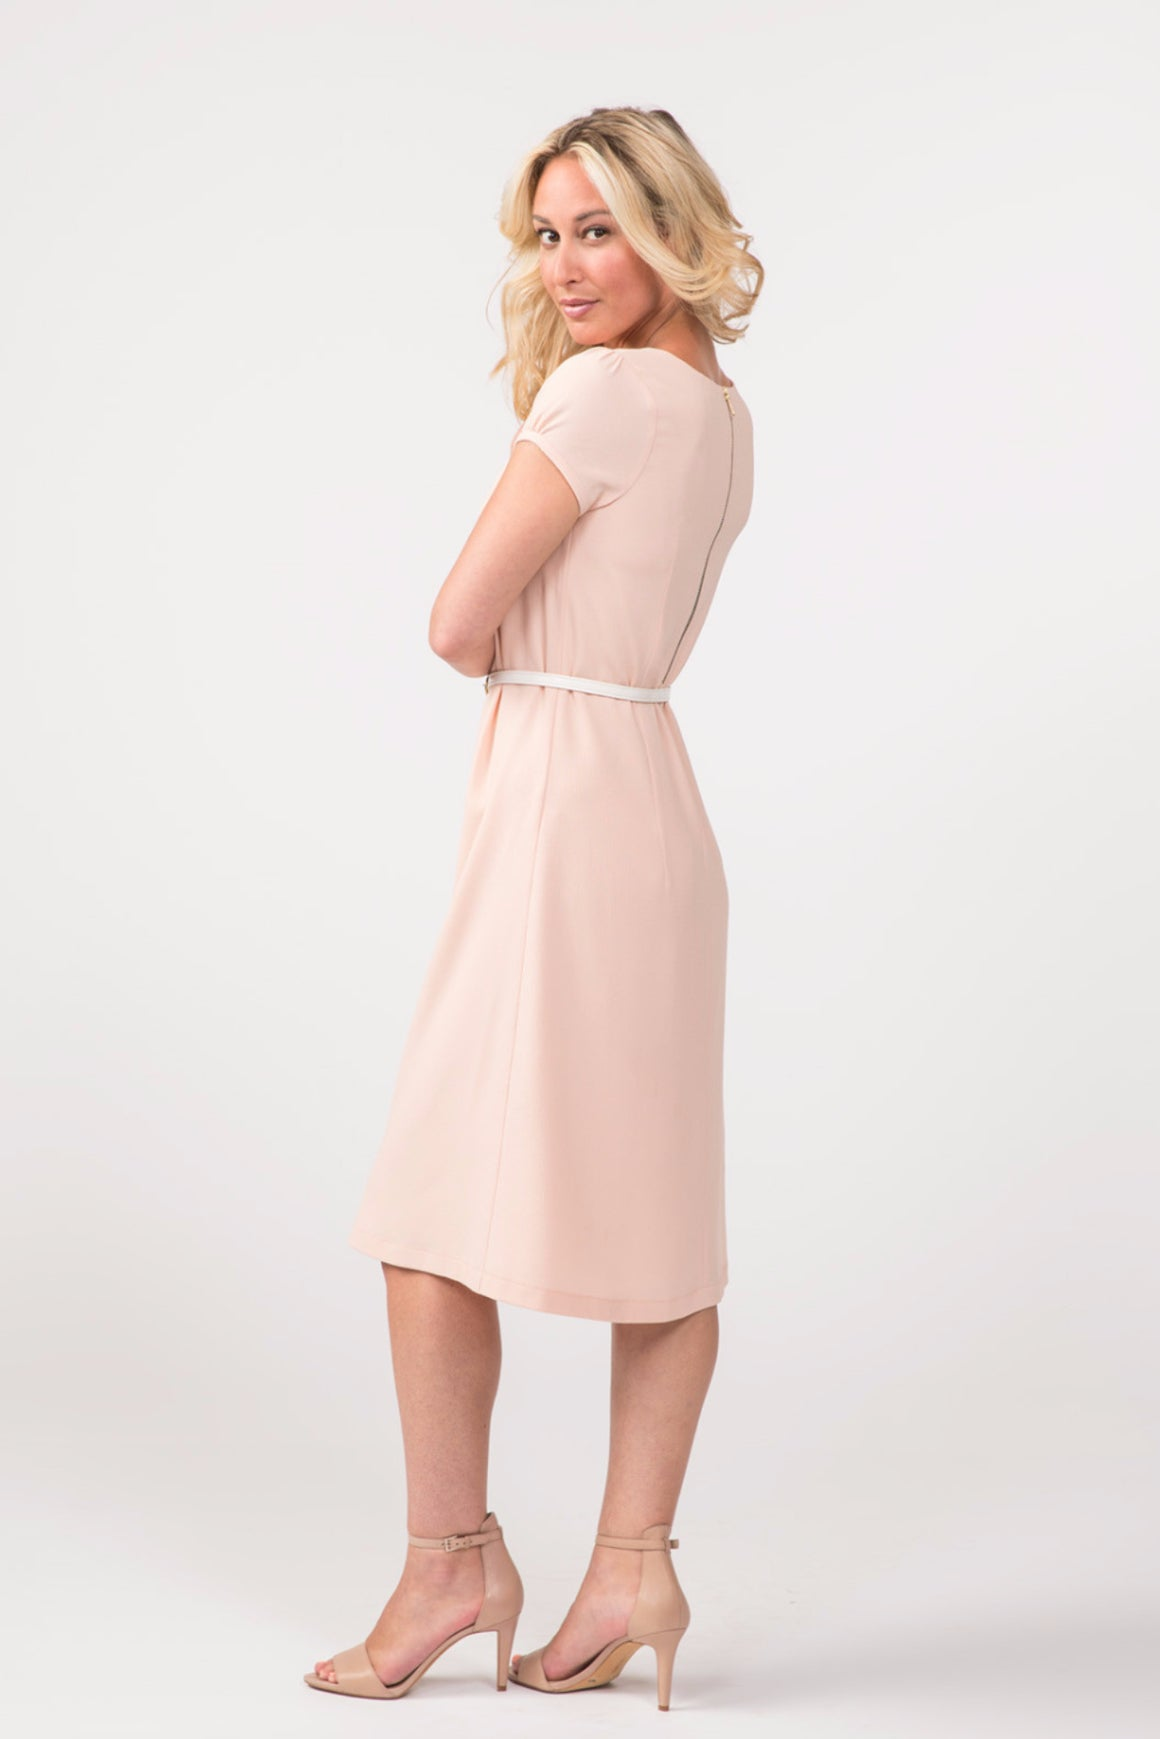 Sarah Dress - Modique - modest dress